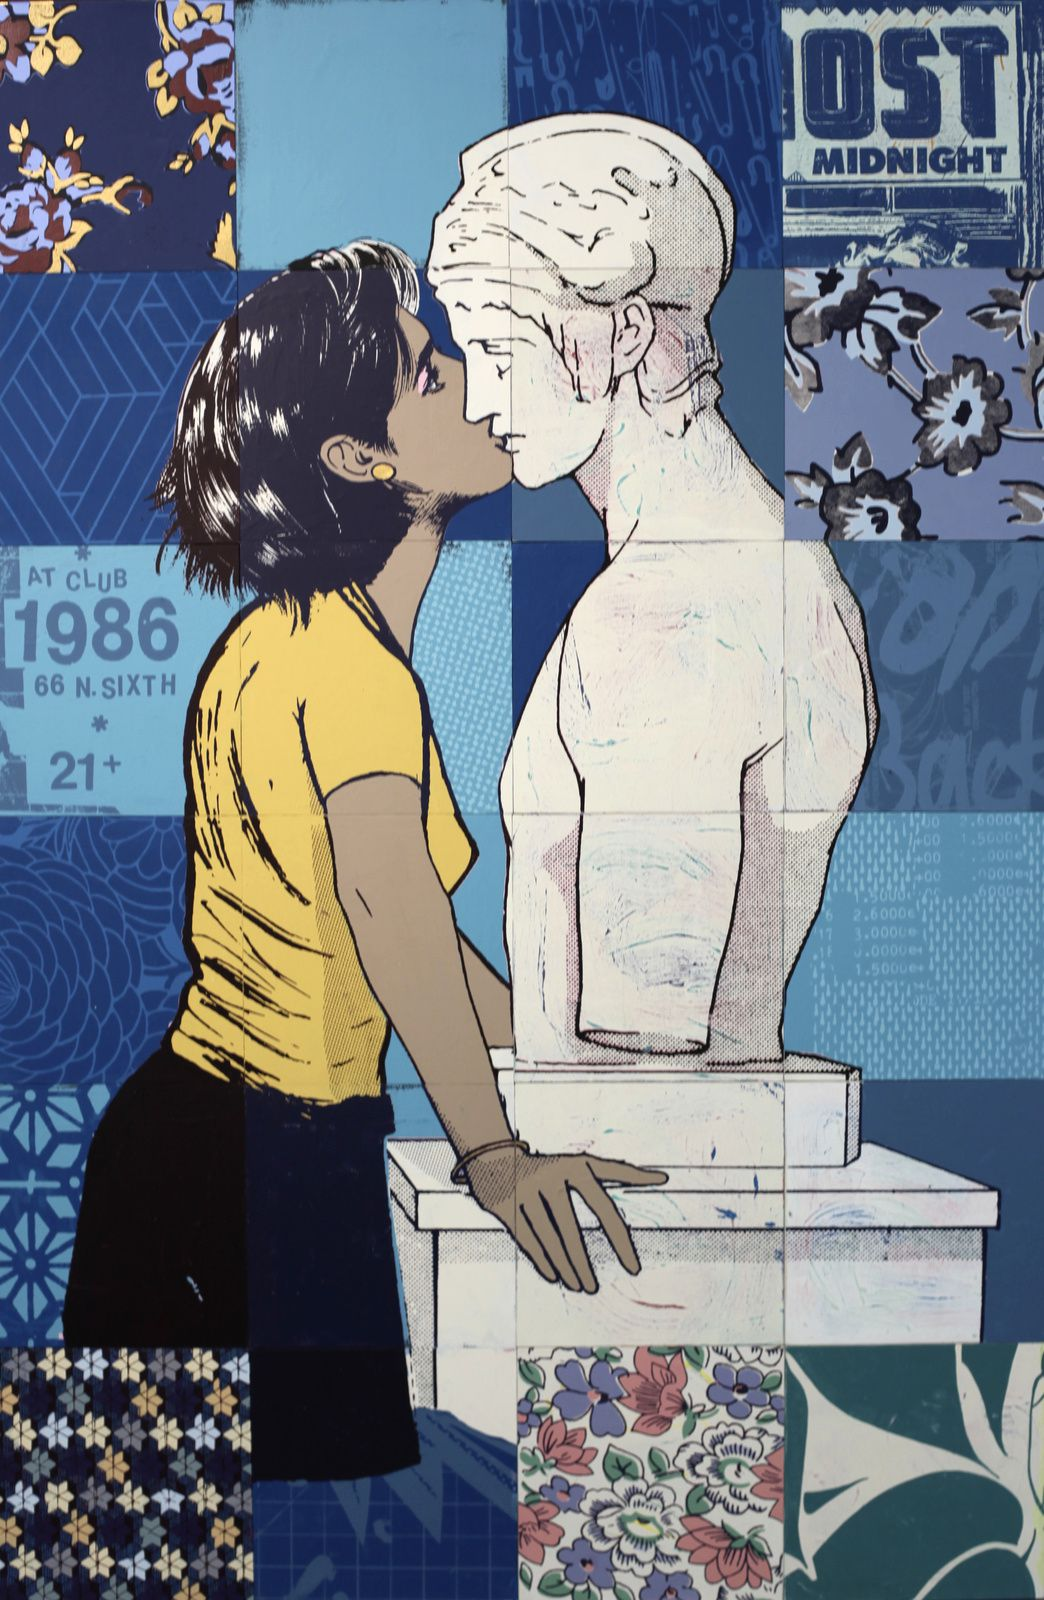 """In worlds between us"", 2017 de FAILE - Courtesy Galerie Magda Danysz © Photo Éric Simon"